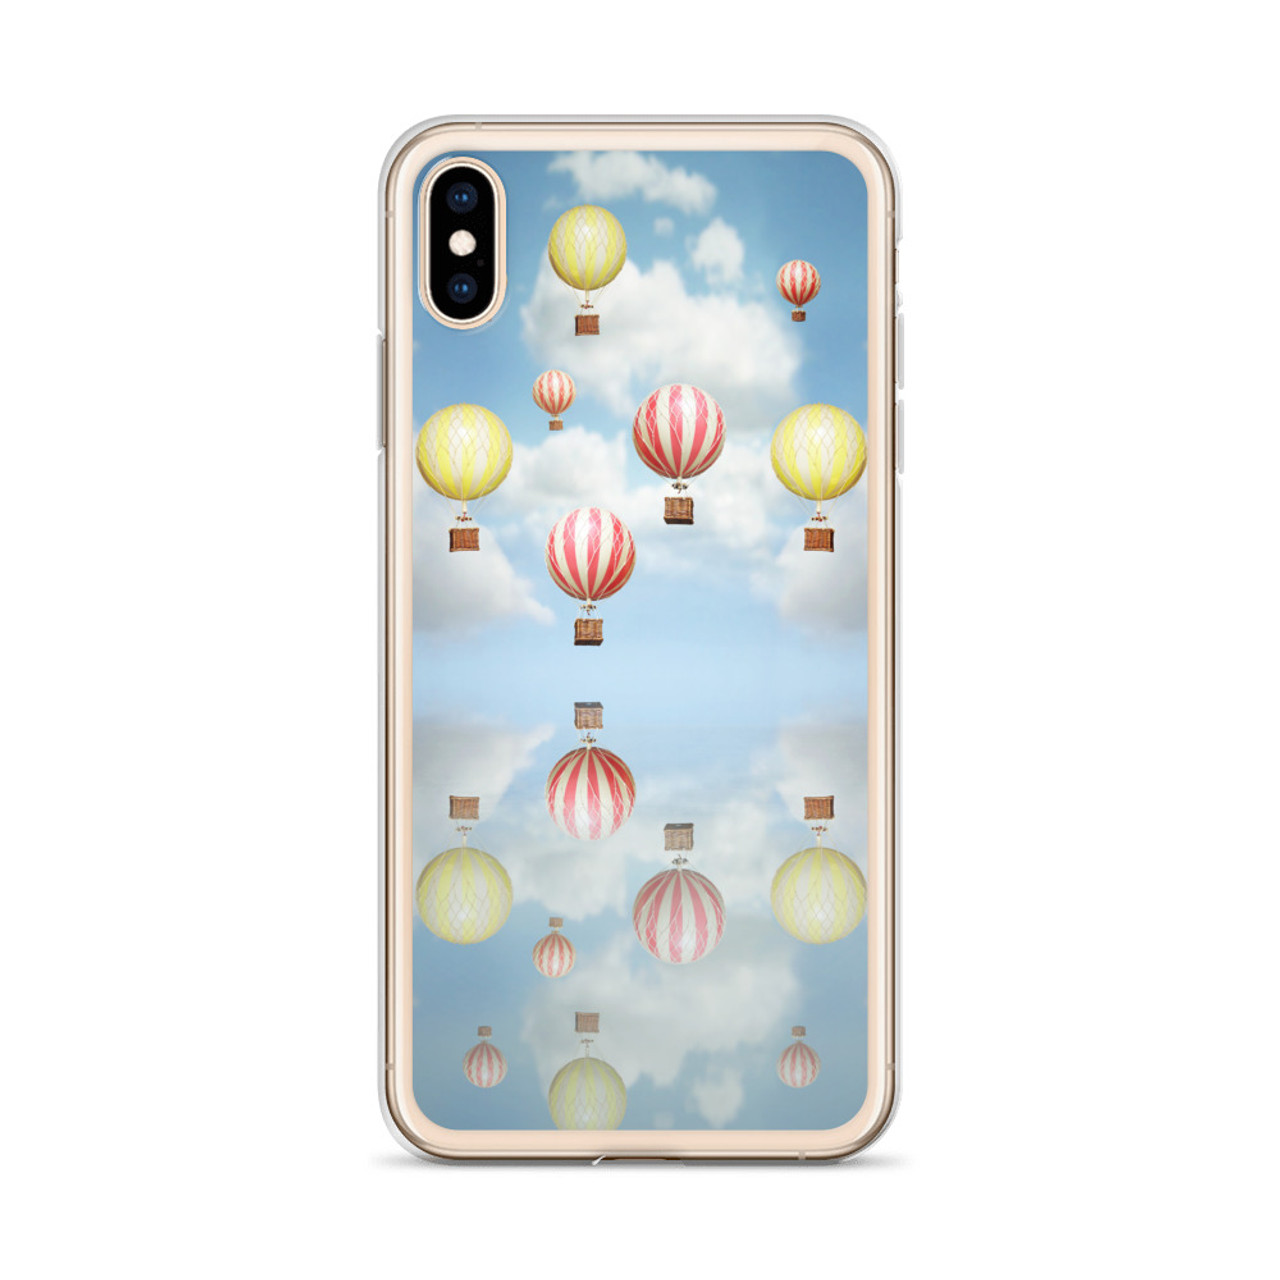 Old Fashioned Hot Air Balloons Iphone Case